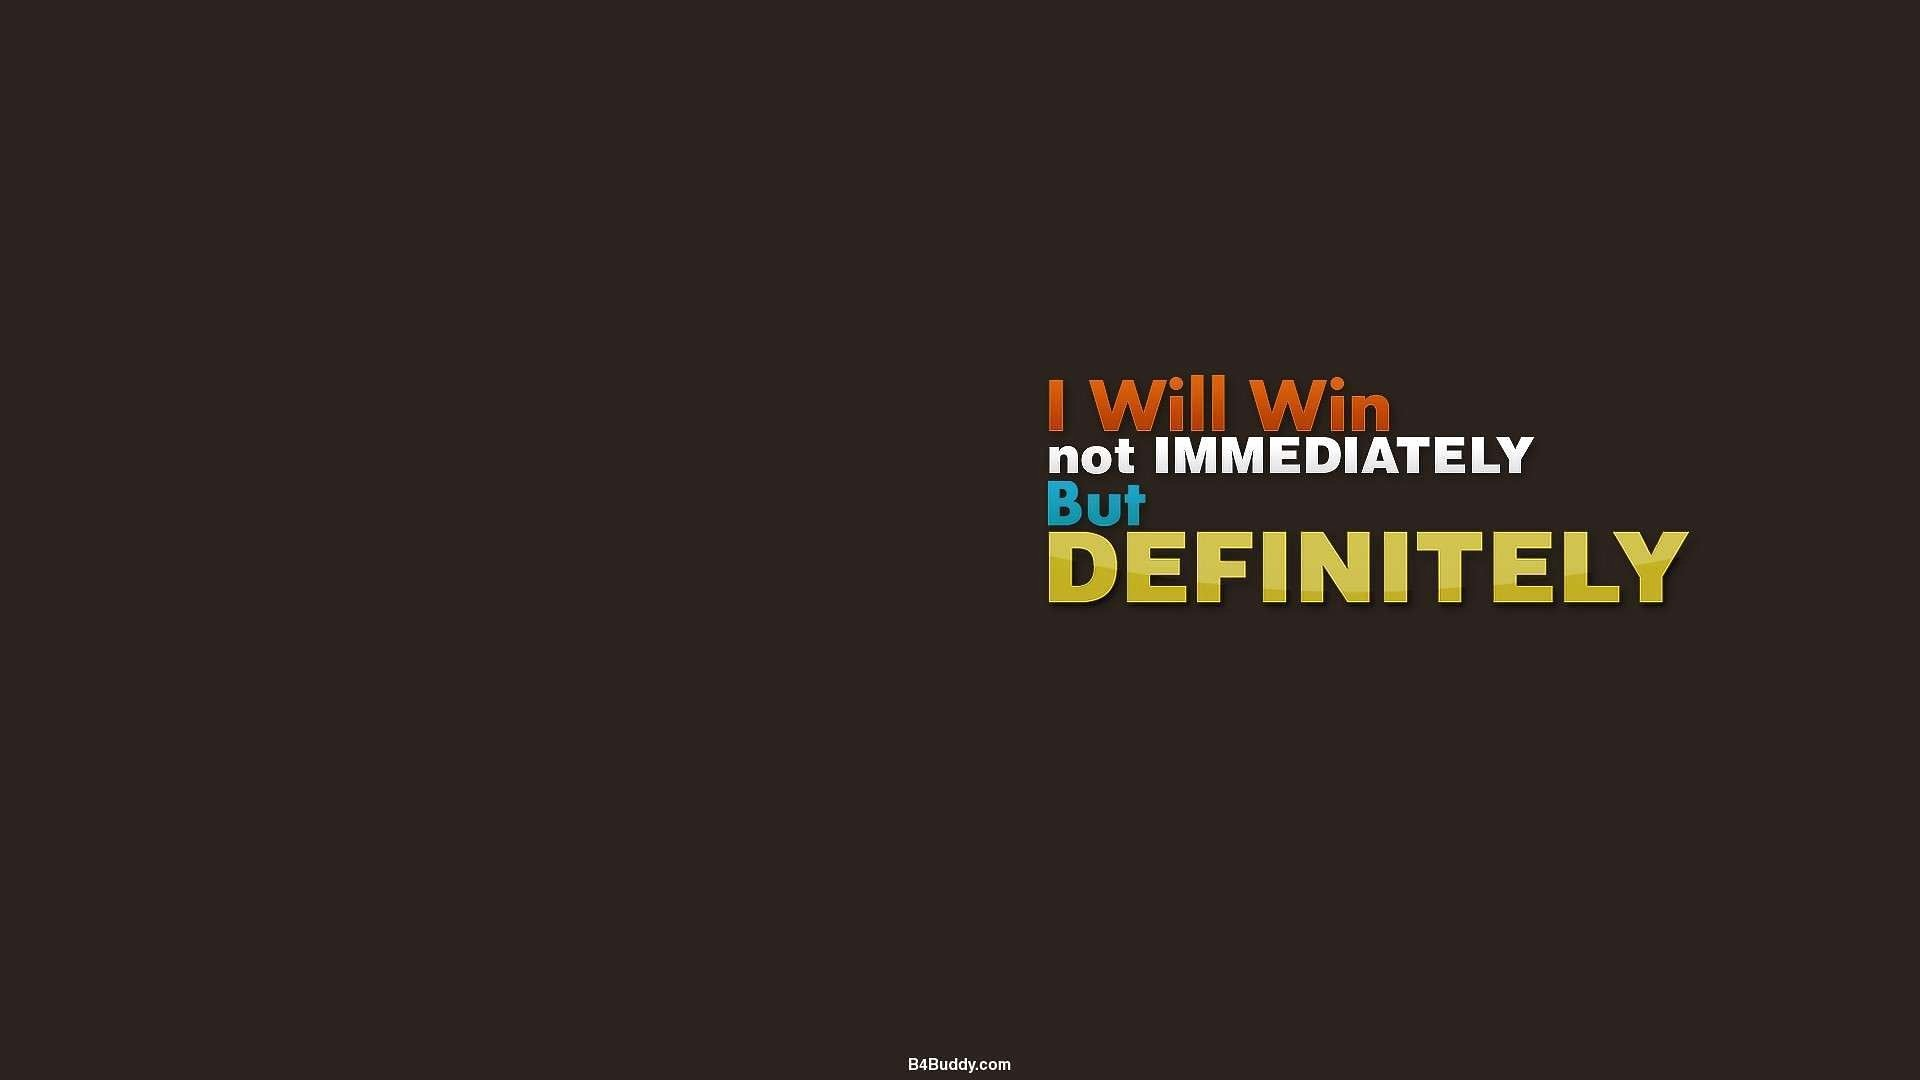 1920x1080, Iphone Wallpaper Hd Quotes Awesome I Will - Hd Wallpapers Motivational - HD Wallpaper